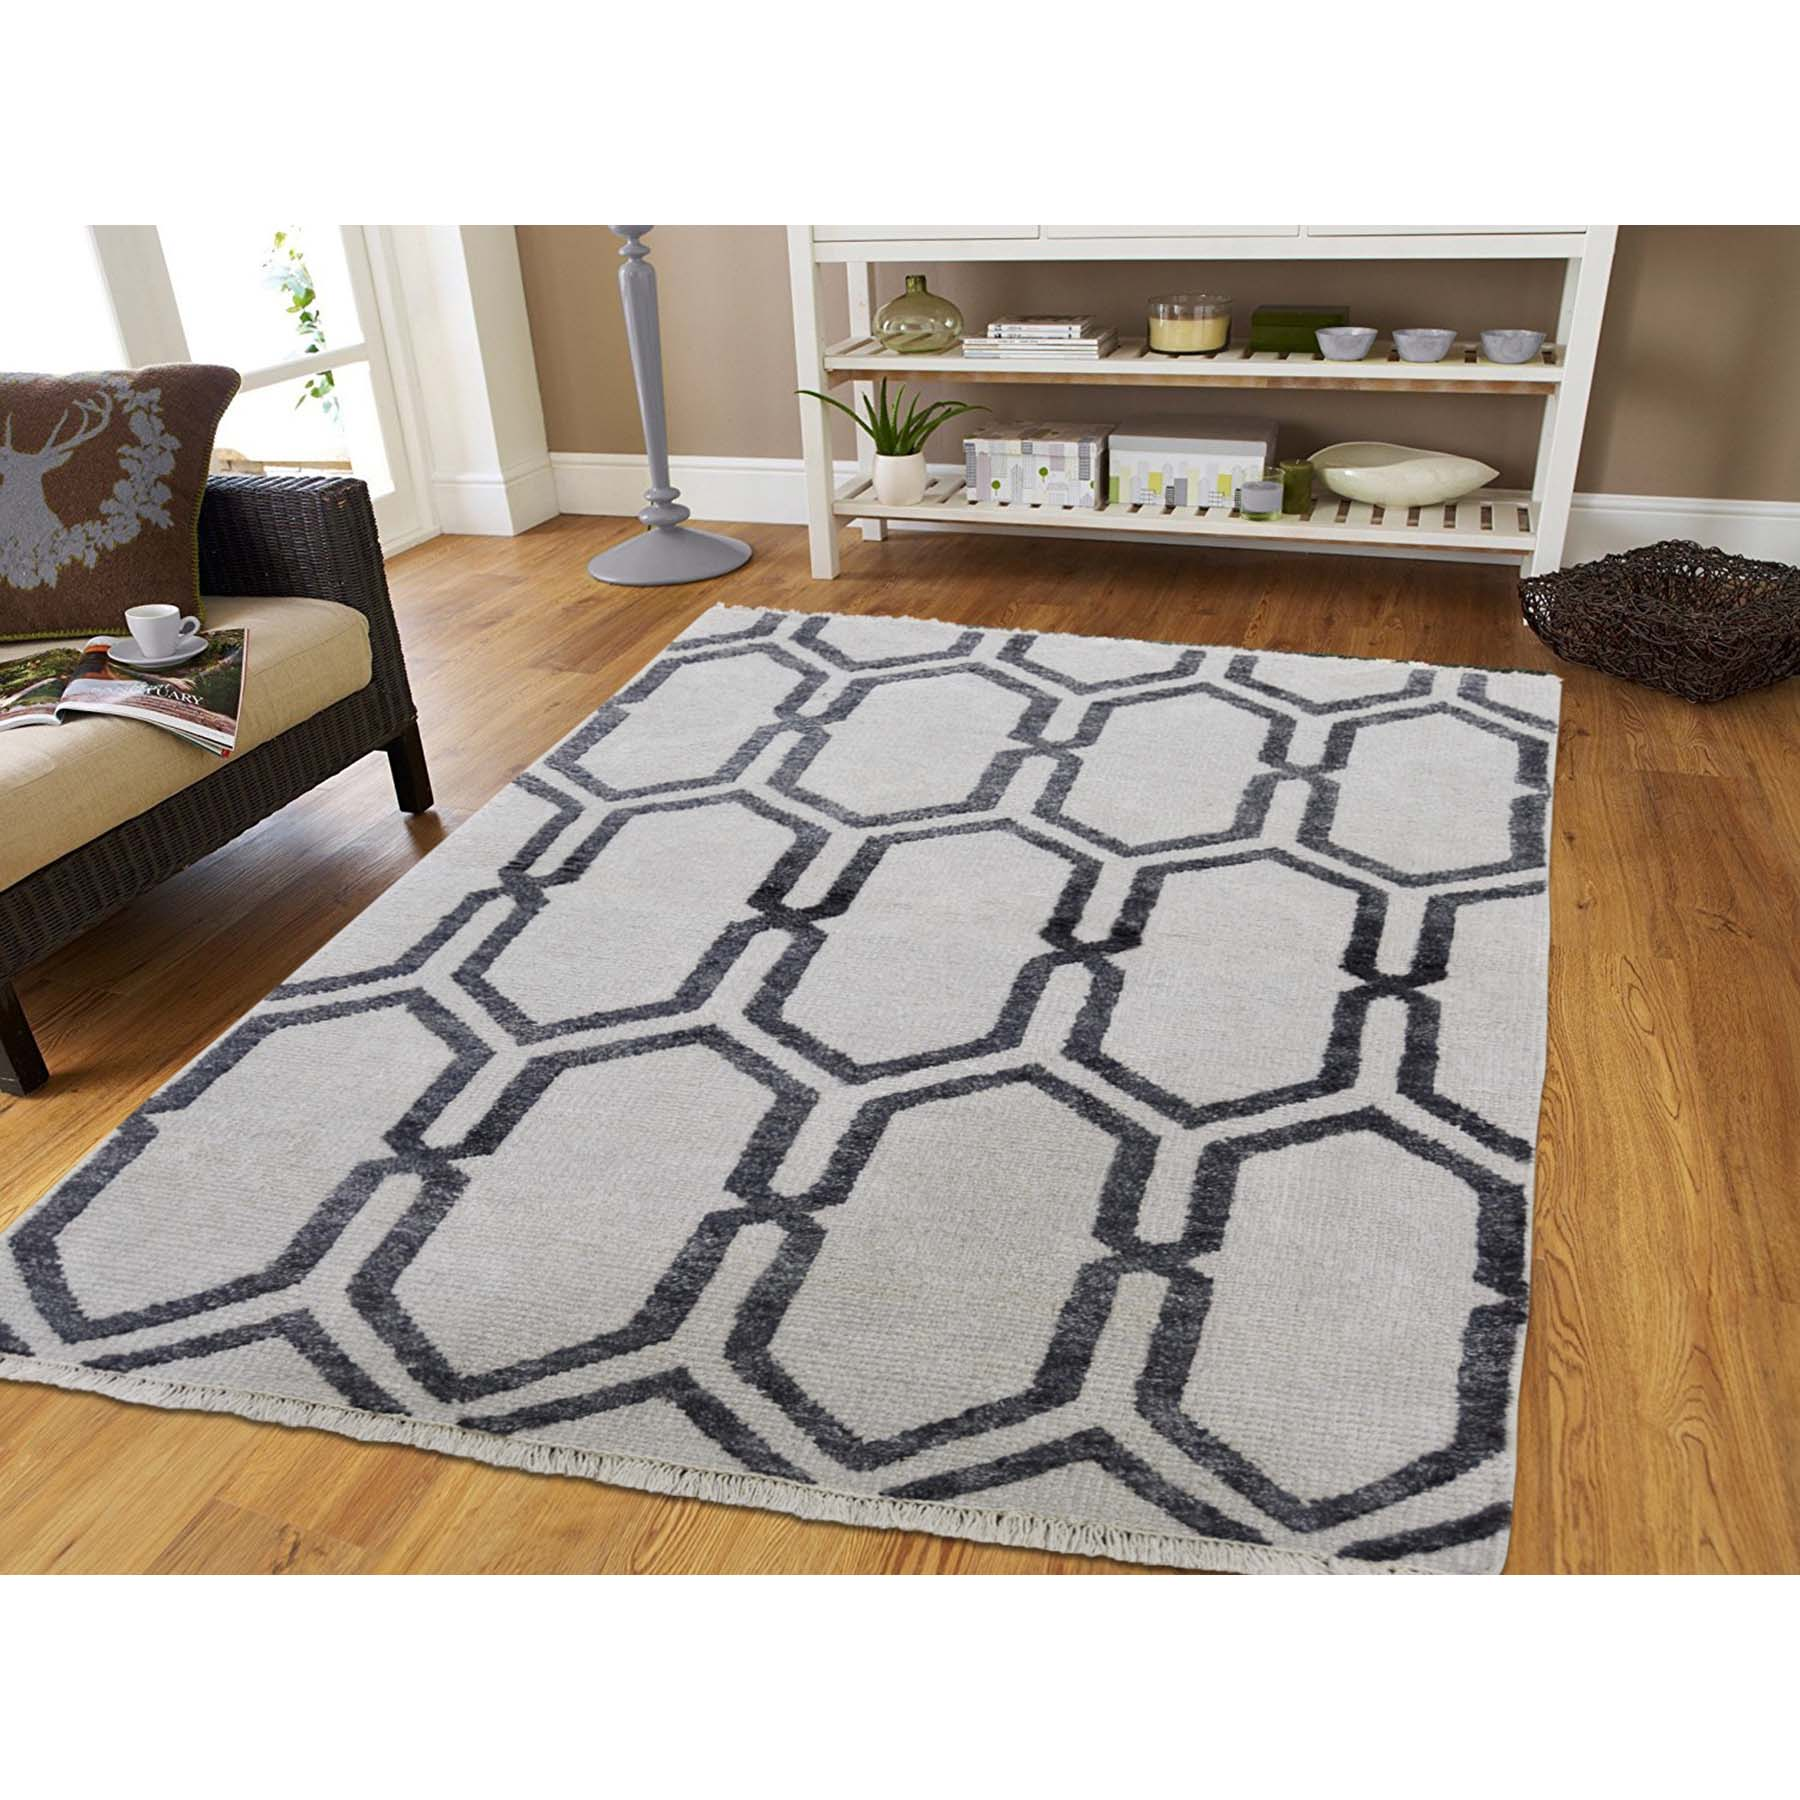 4-x6- Ivory Geometric Design Wool and Silk Hand-Knotted Oriental Rug